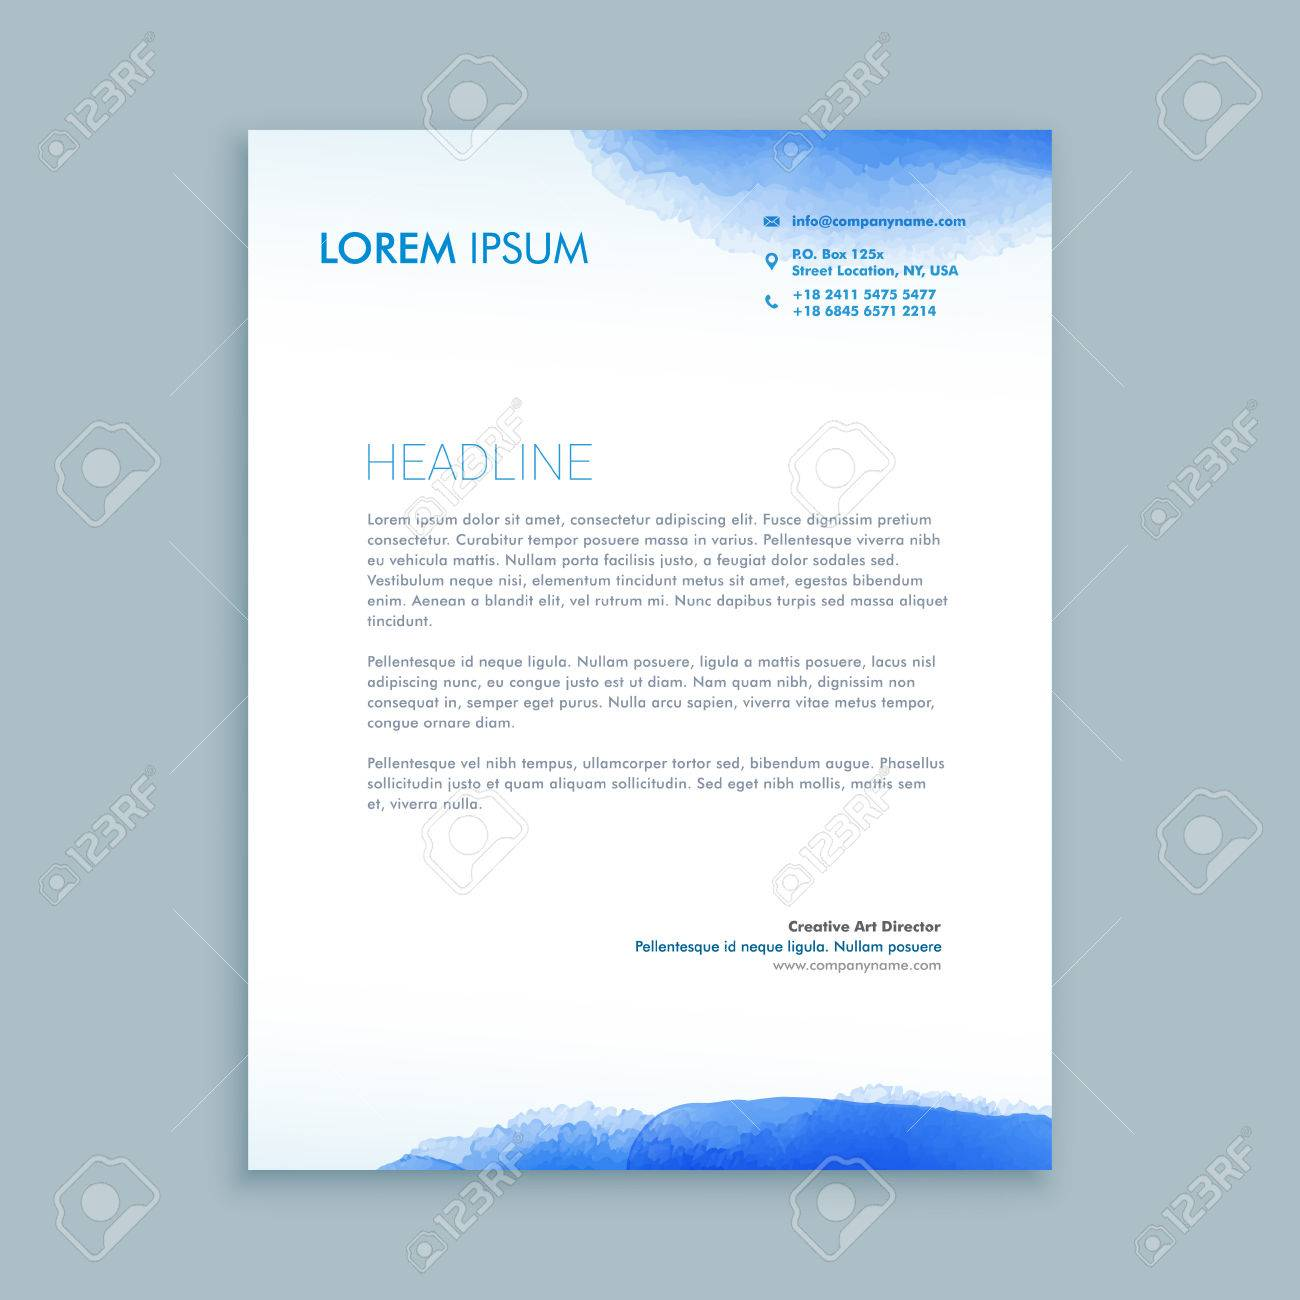 corporate business letterhead template royalty free cliparts